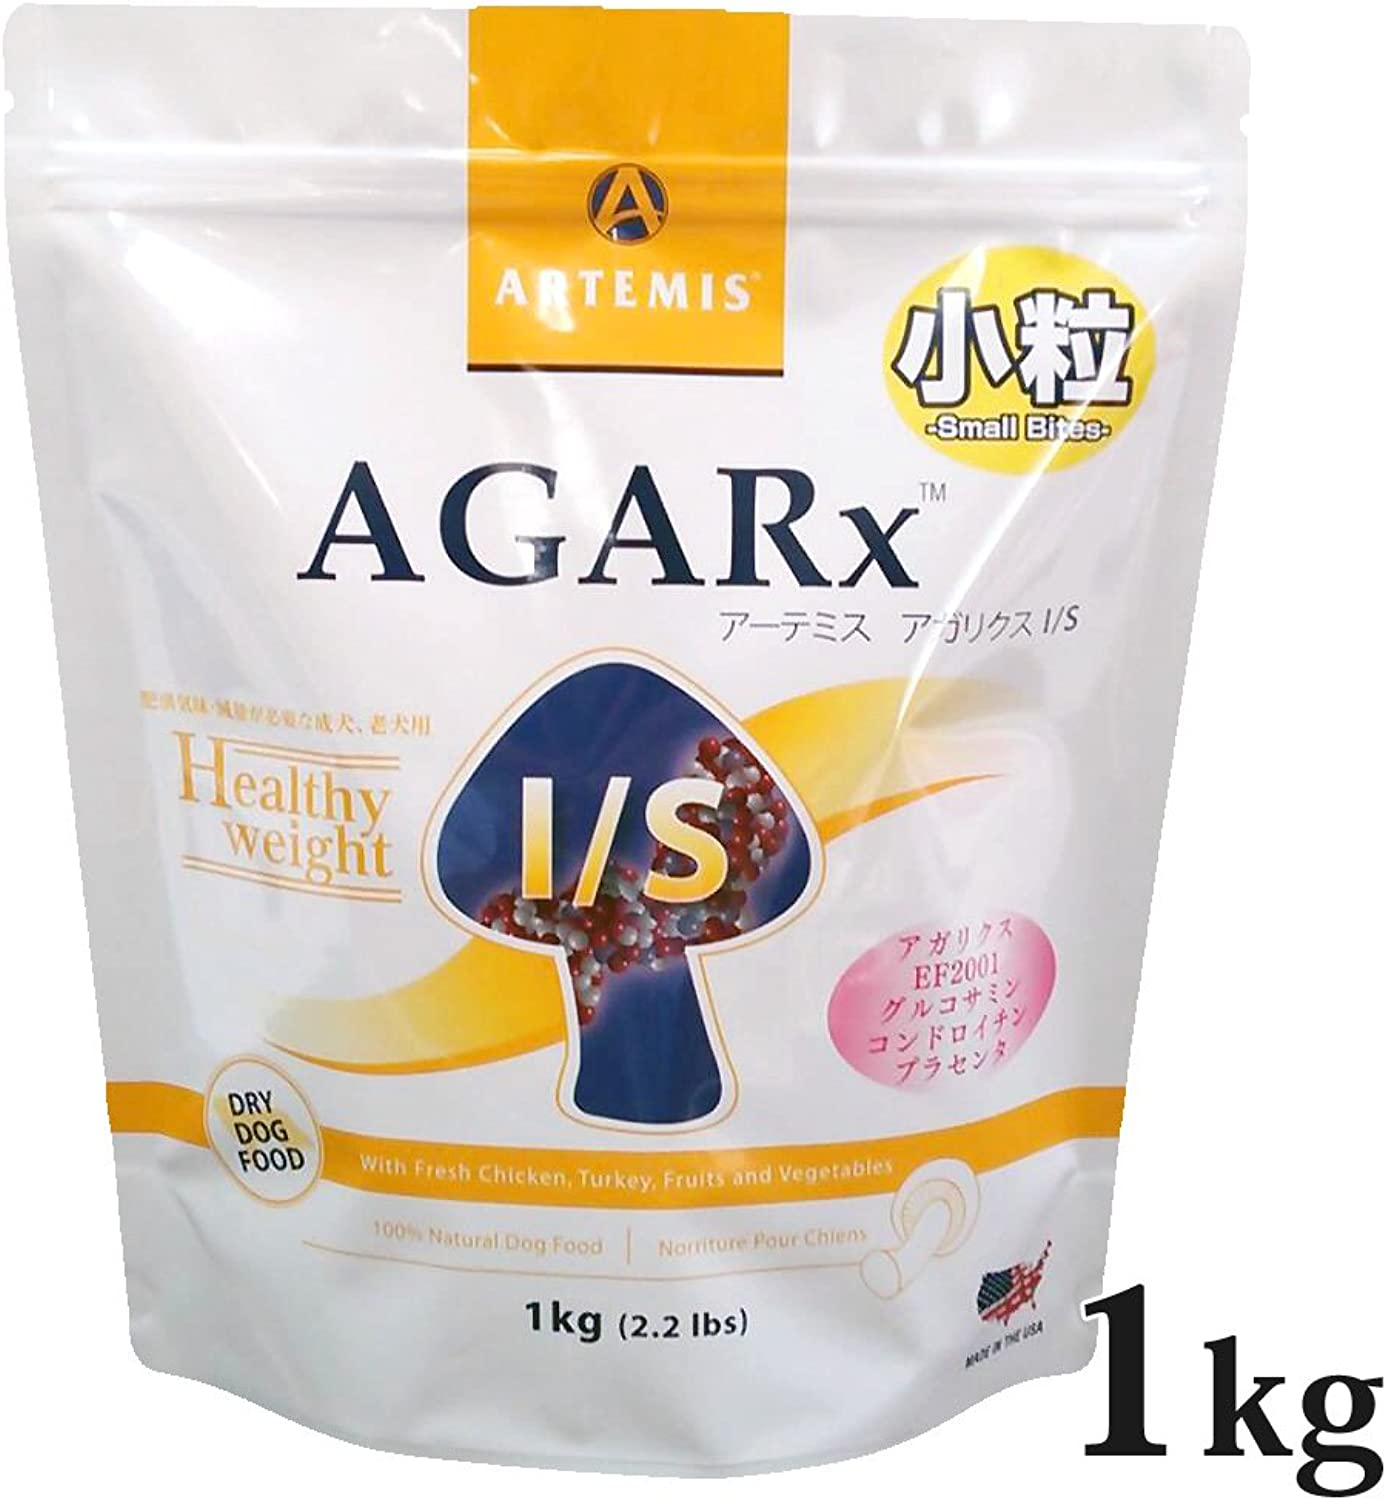 ARTEMIS ARTEMIS AGARx I S support Healthy weight 1kg (Small grain)From JAPAN